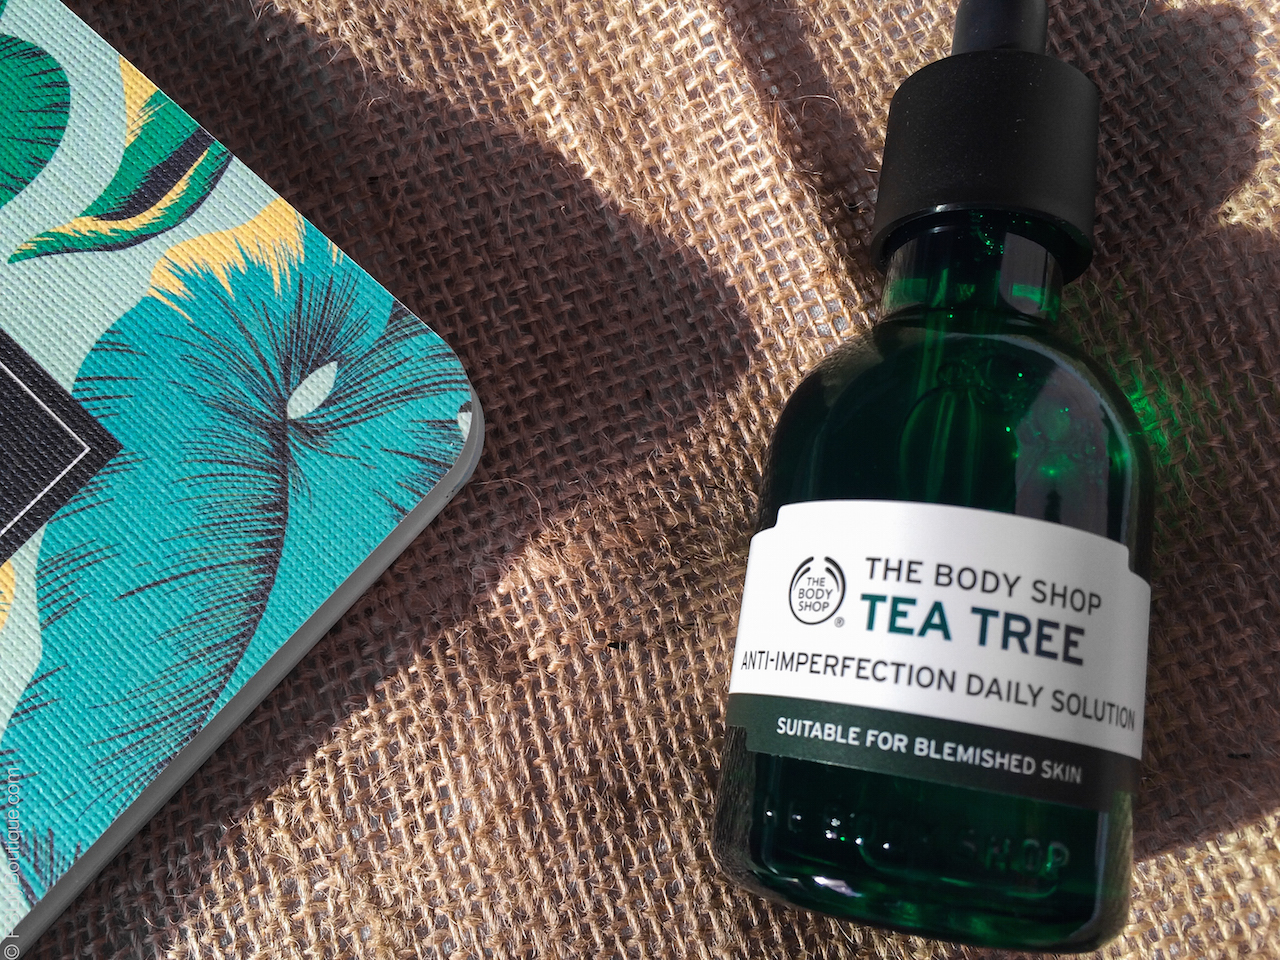 instagram-pslilyboutique-la-fashion-blogger-top-the-body-shop-tea-tree-anti-imperfection-daily-solution-face-serum-vegan-beauty-skin-care-collaboration-summer-8-29-16